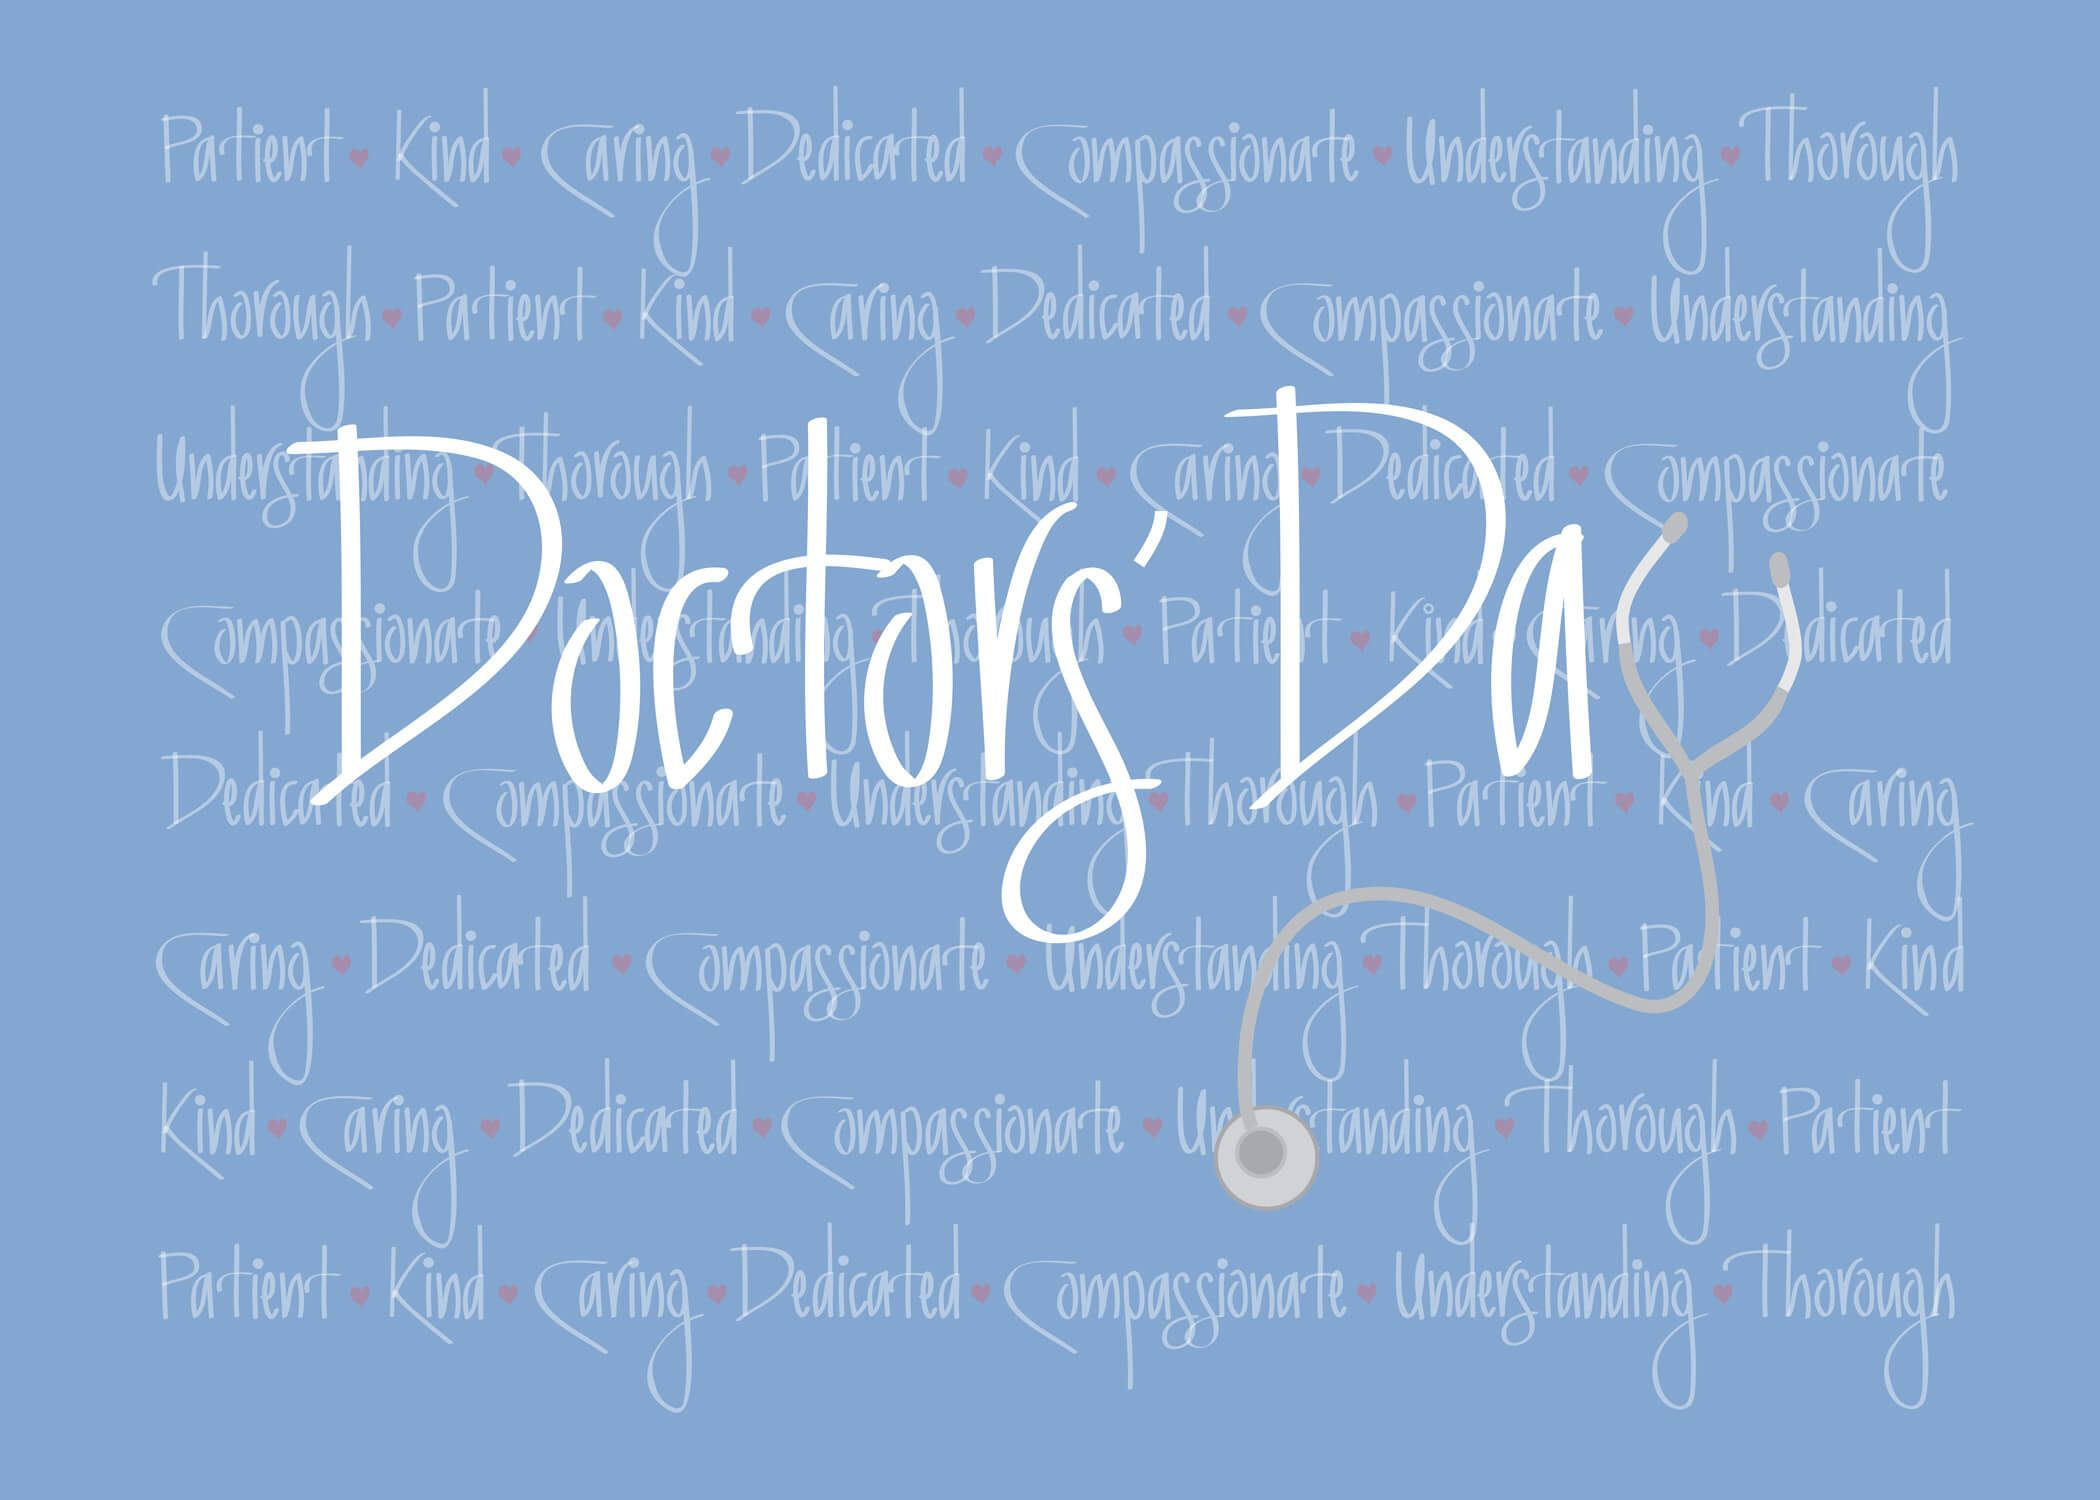 Happy doctors day wishes and doctor day quotes happy doctors day happy doctors day wishes and doctor day quotes happy doctors day greetings with inspiring messages m4hsunfo